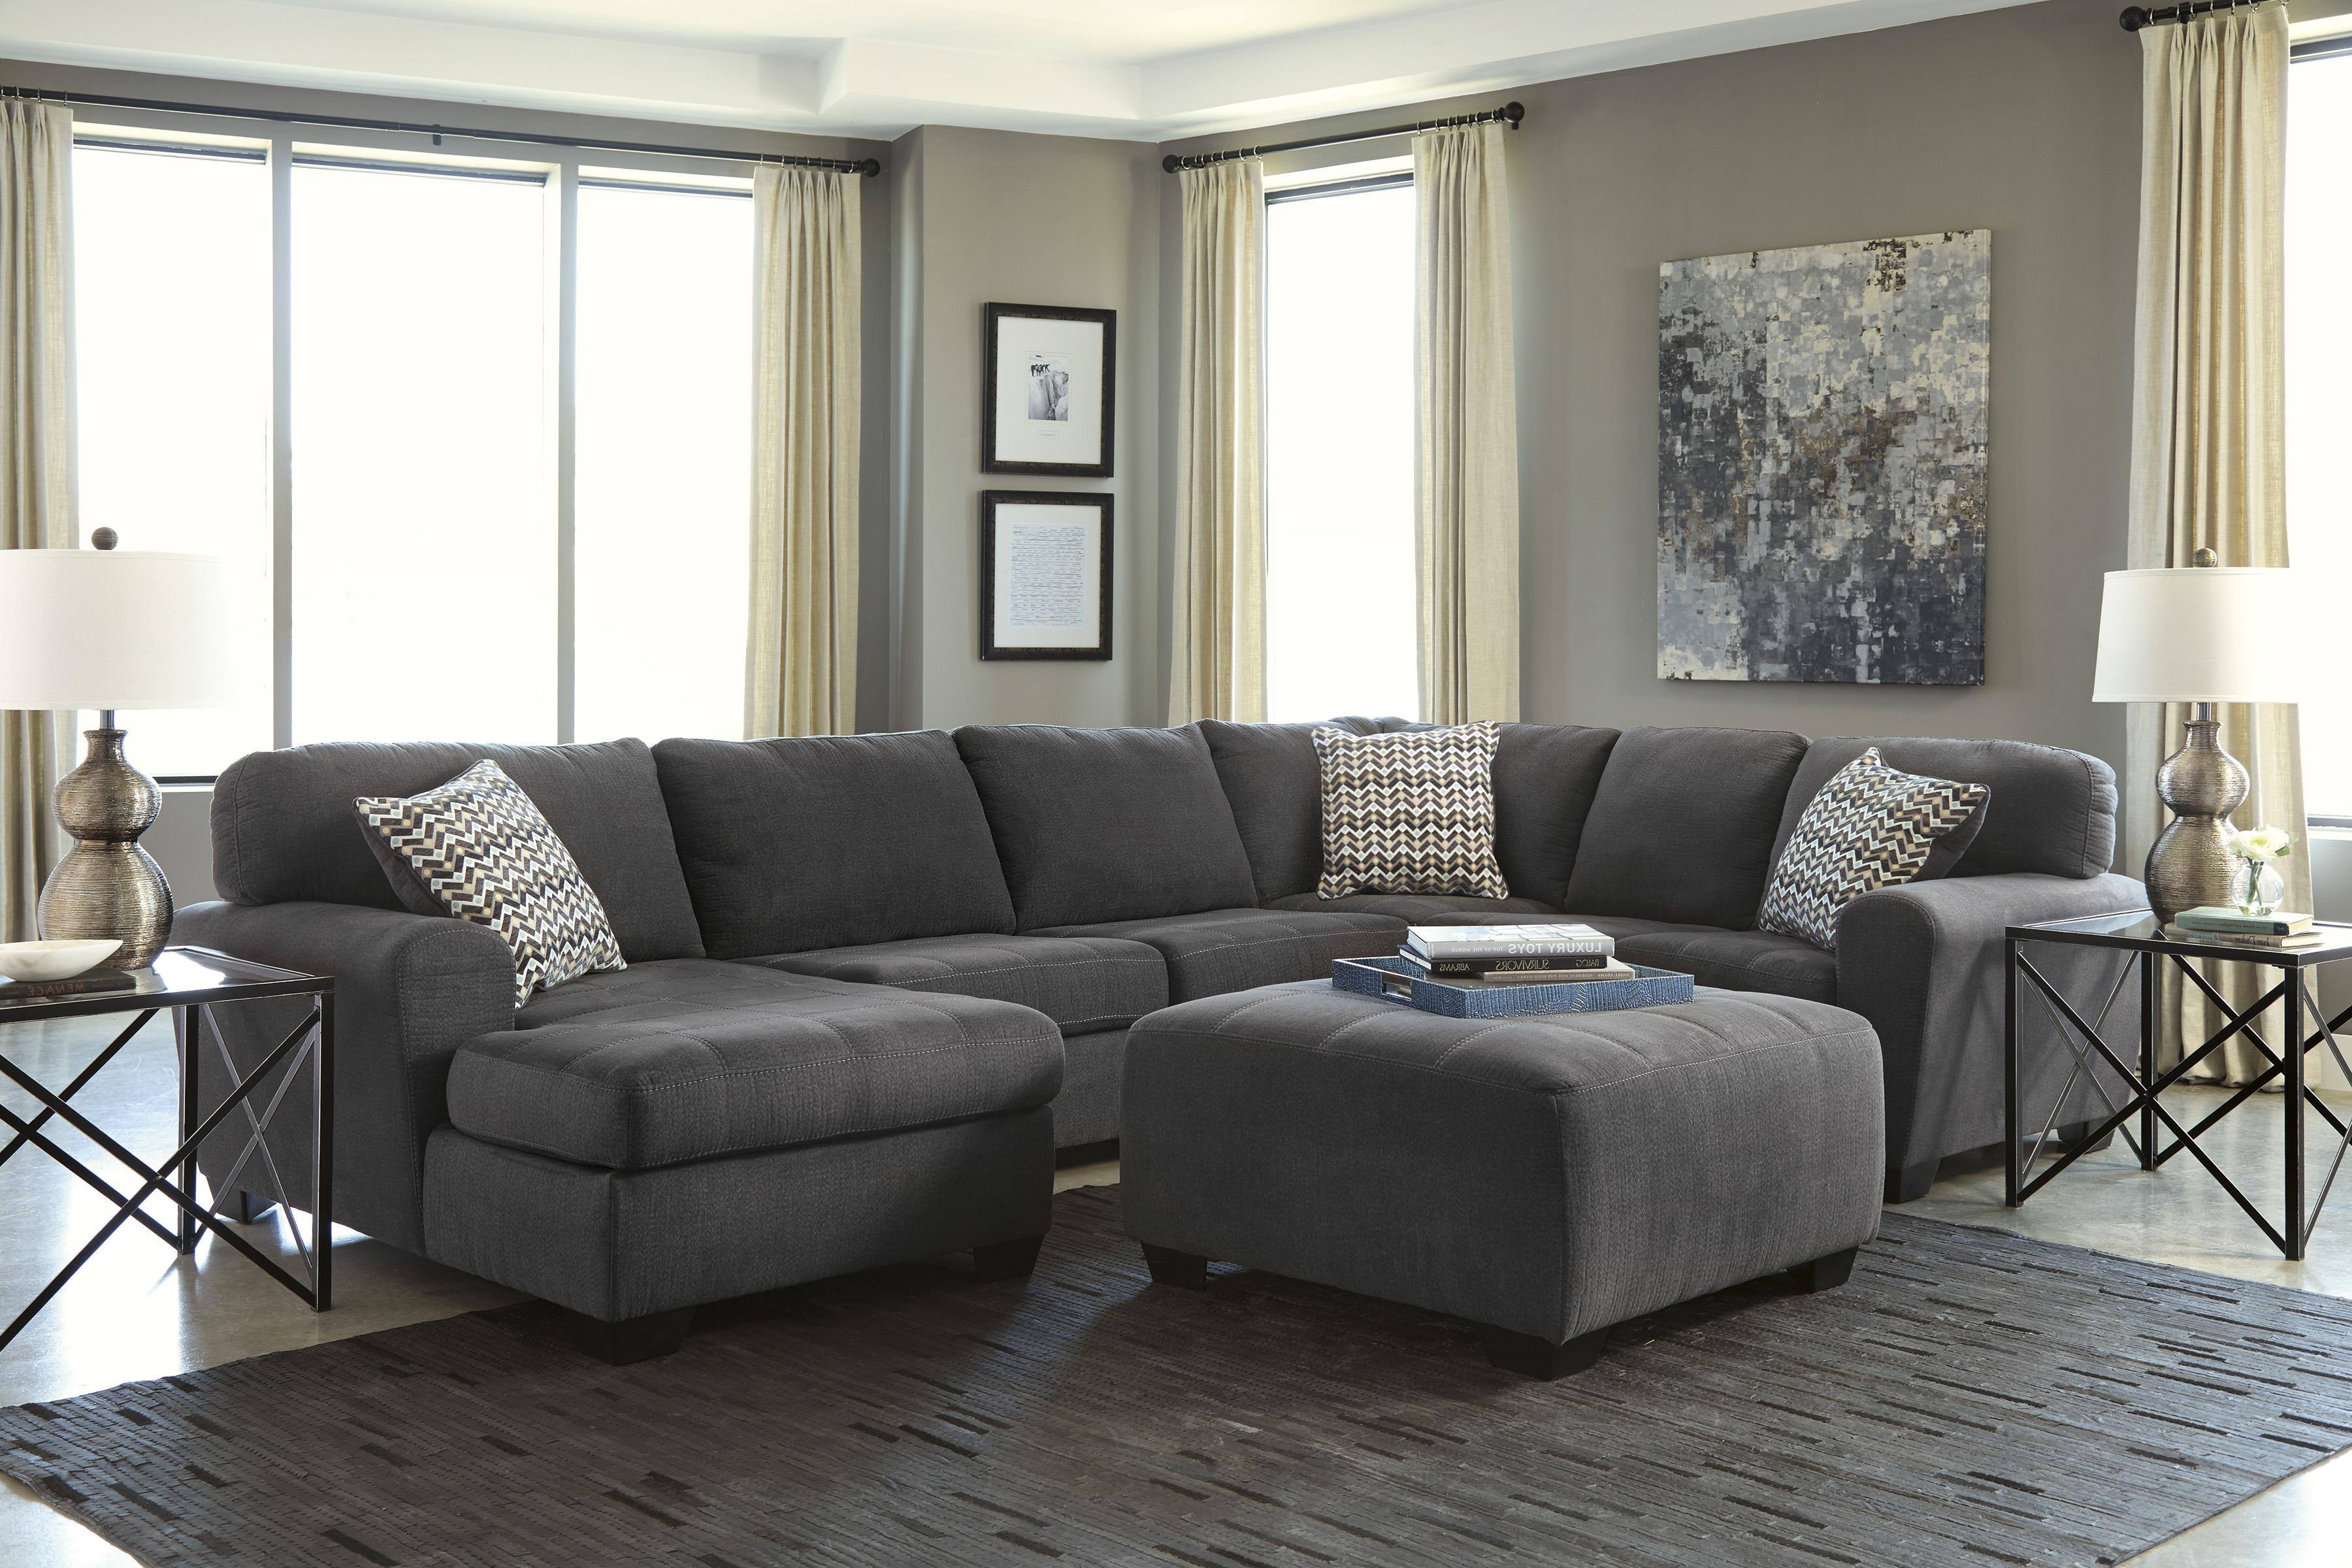 Benchcraft Sorenton Stationary Living Room Group - Item Number: 28600 Living Room Group 2